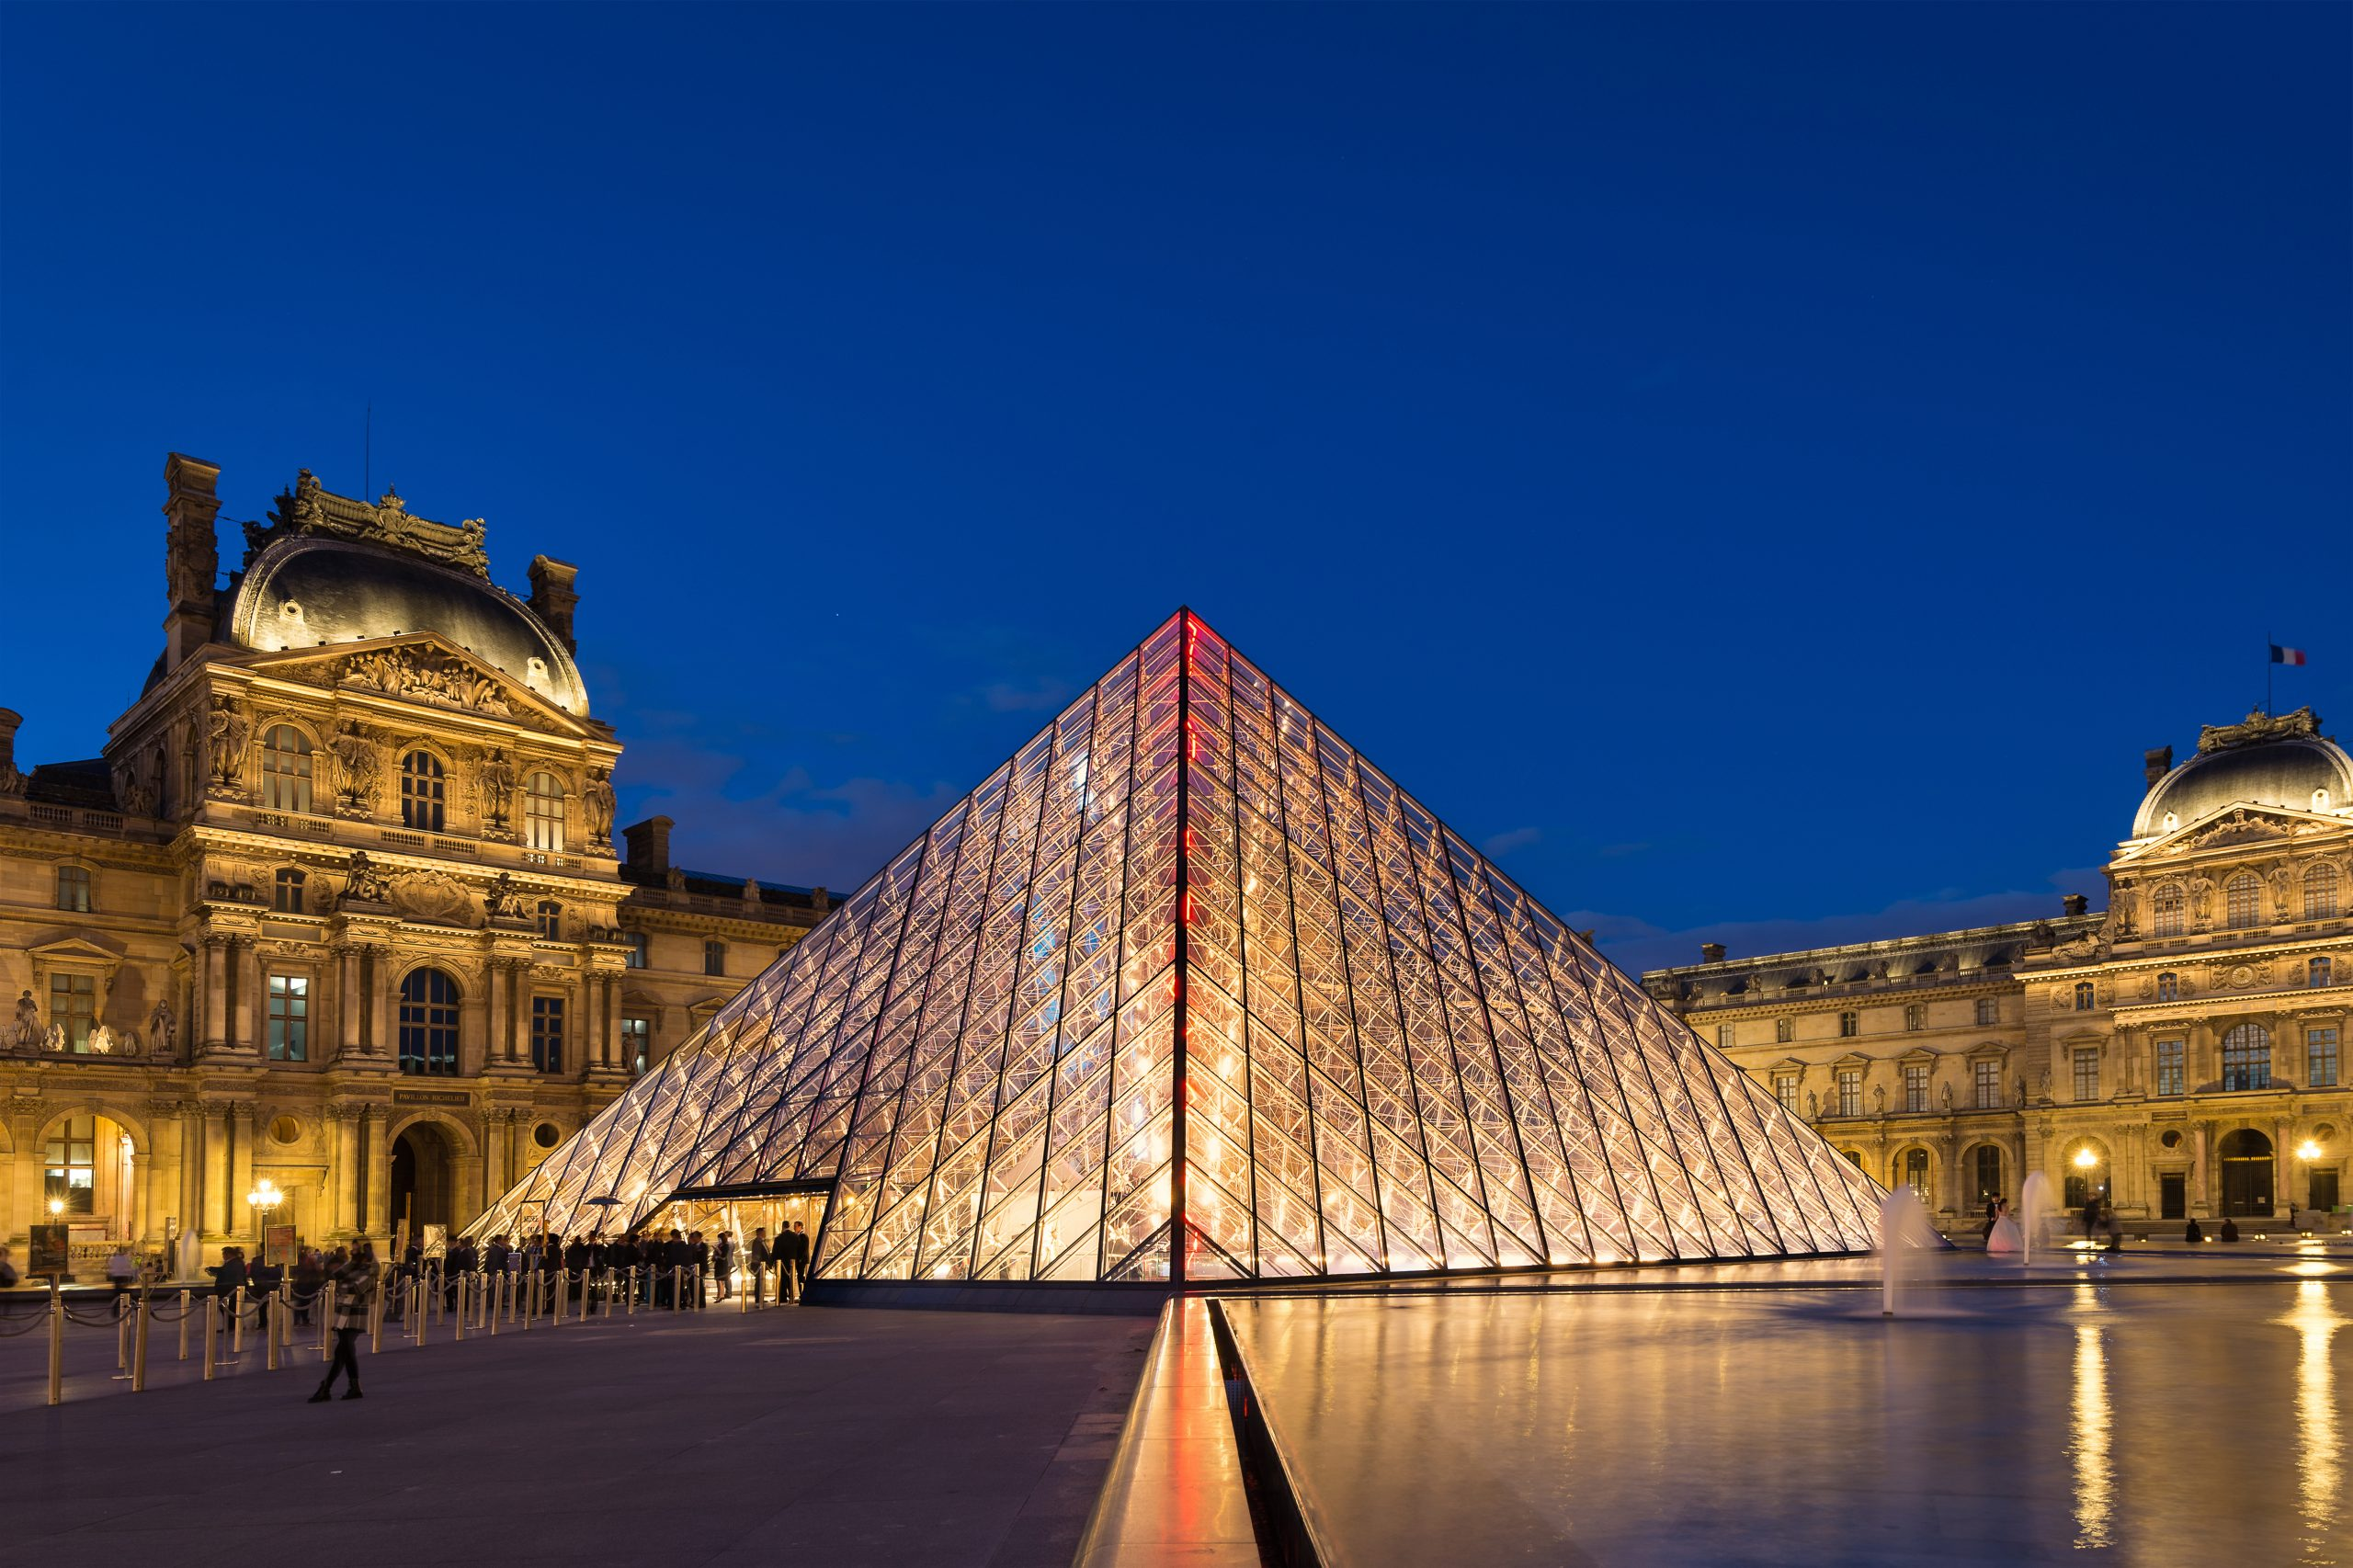 Illuminated glass pyramid with ornate building in background.